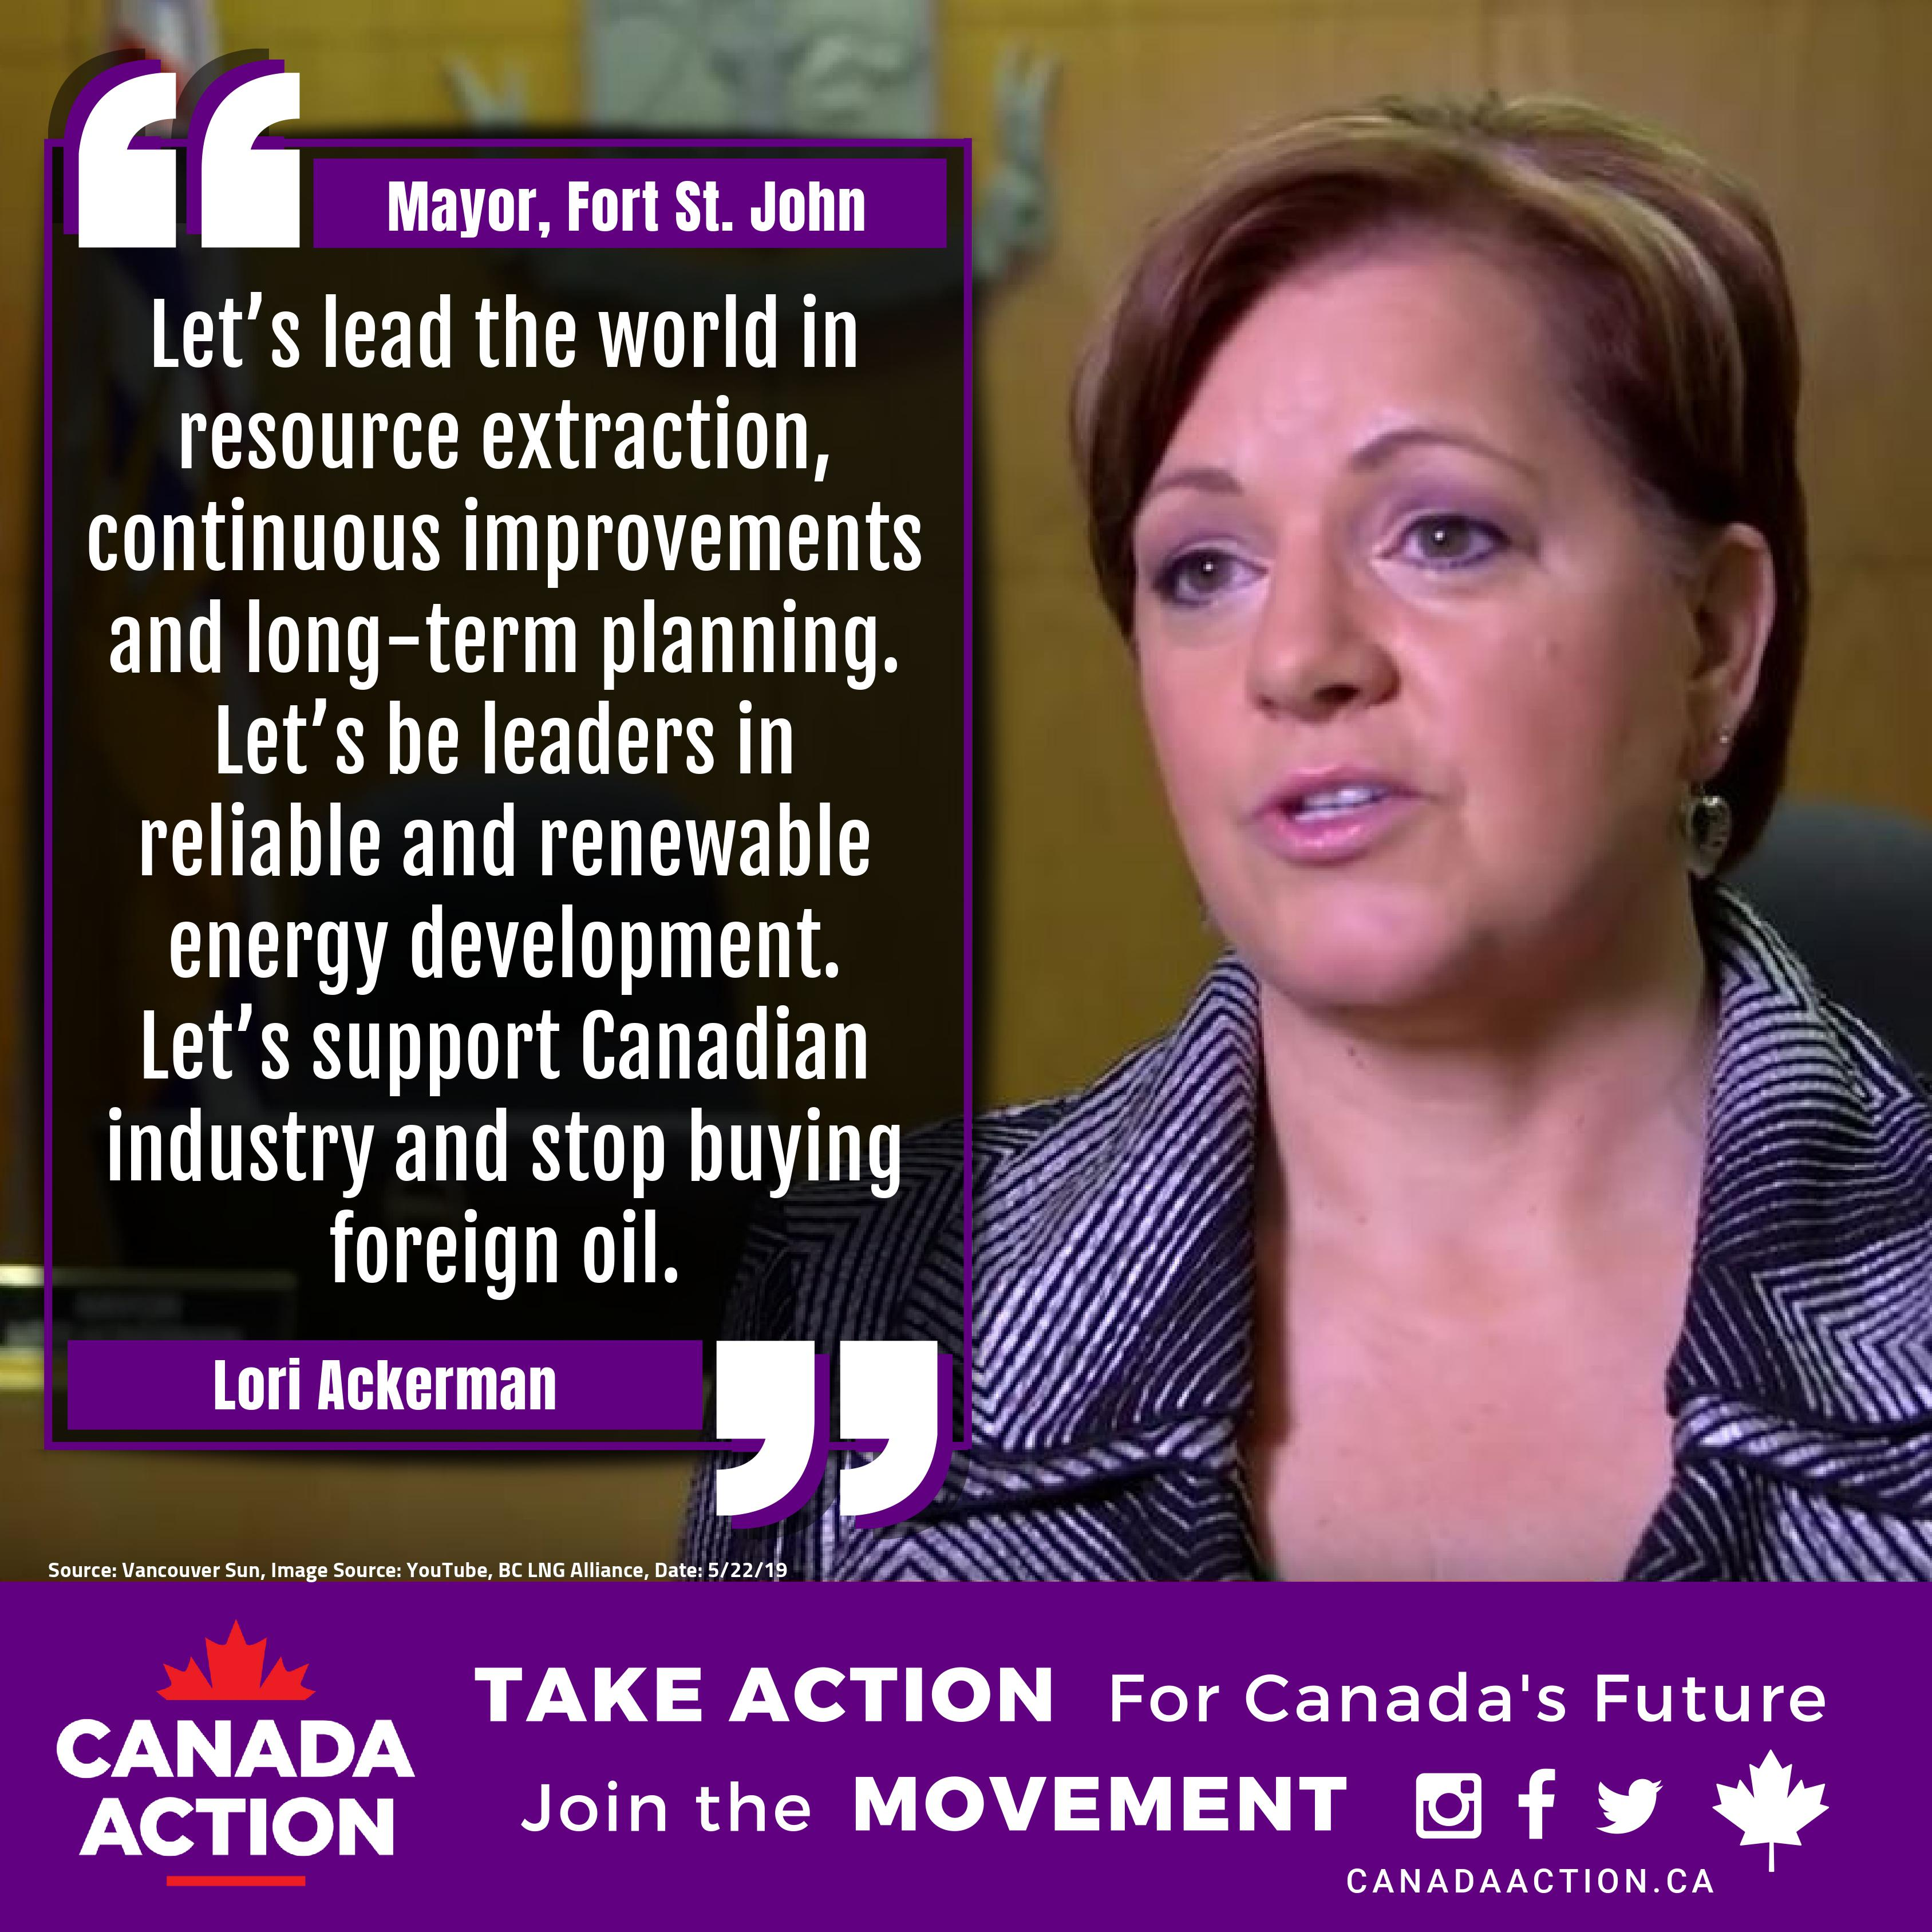 Lori Ackerman, Mayor, Fort St. John, B.C., supports Canadian natural resources